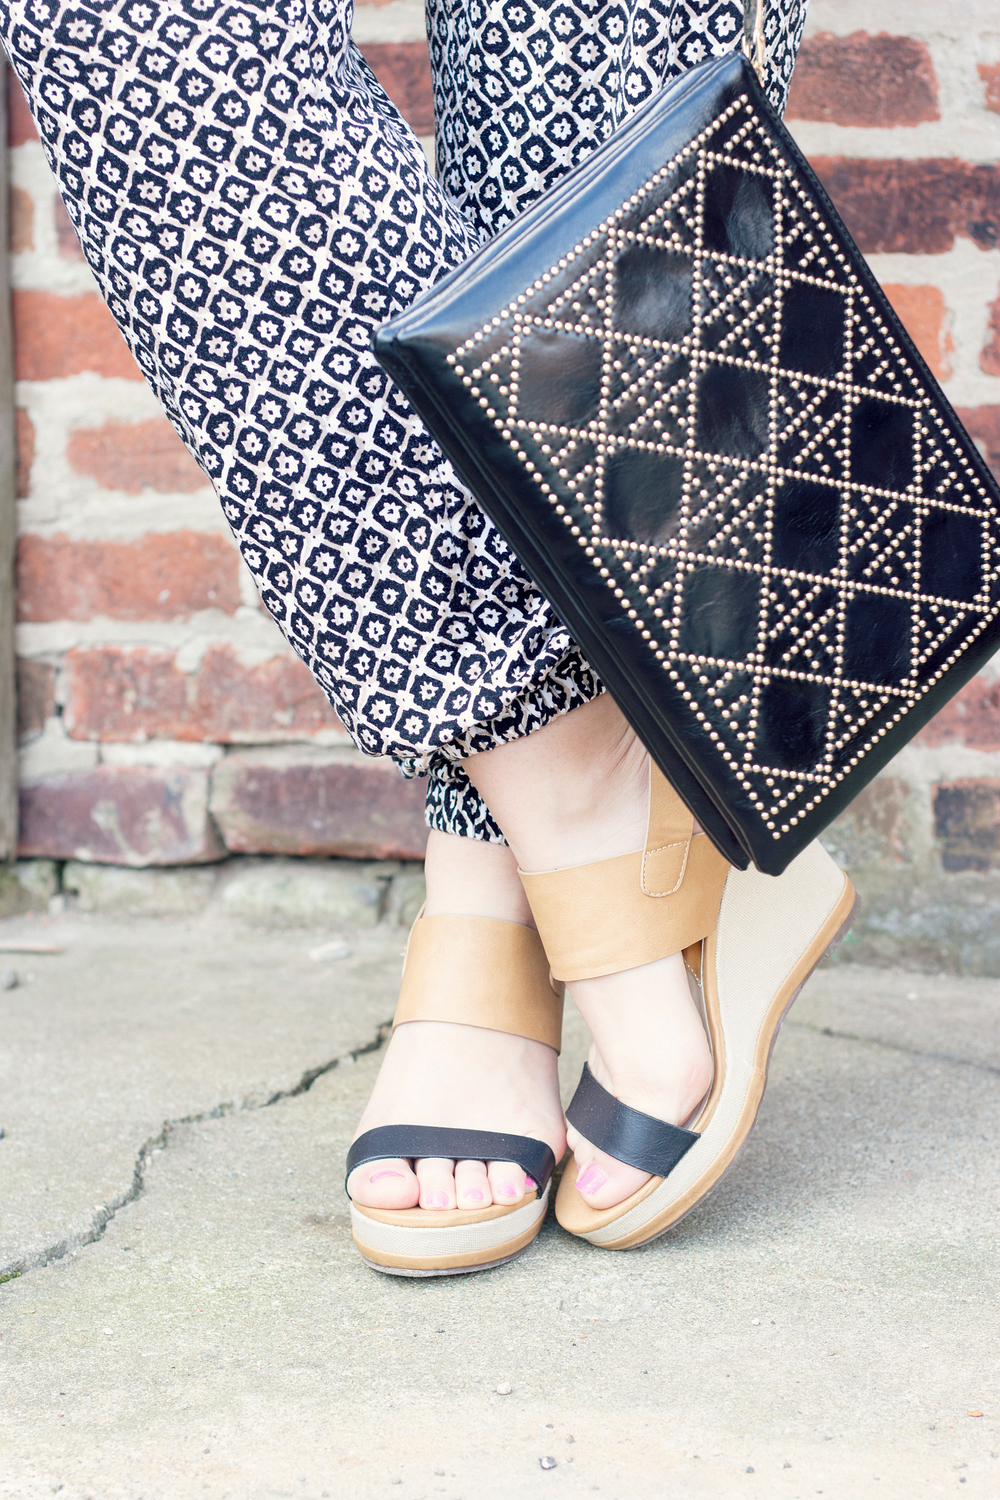 Cute two tone wedges for summer